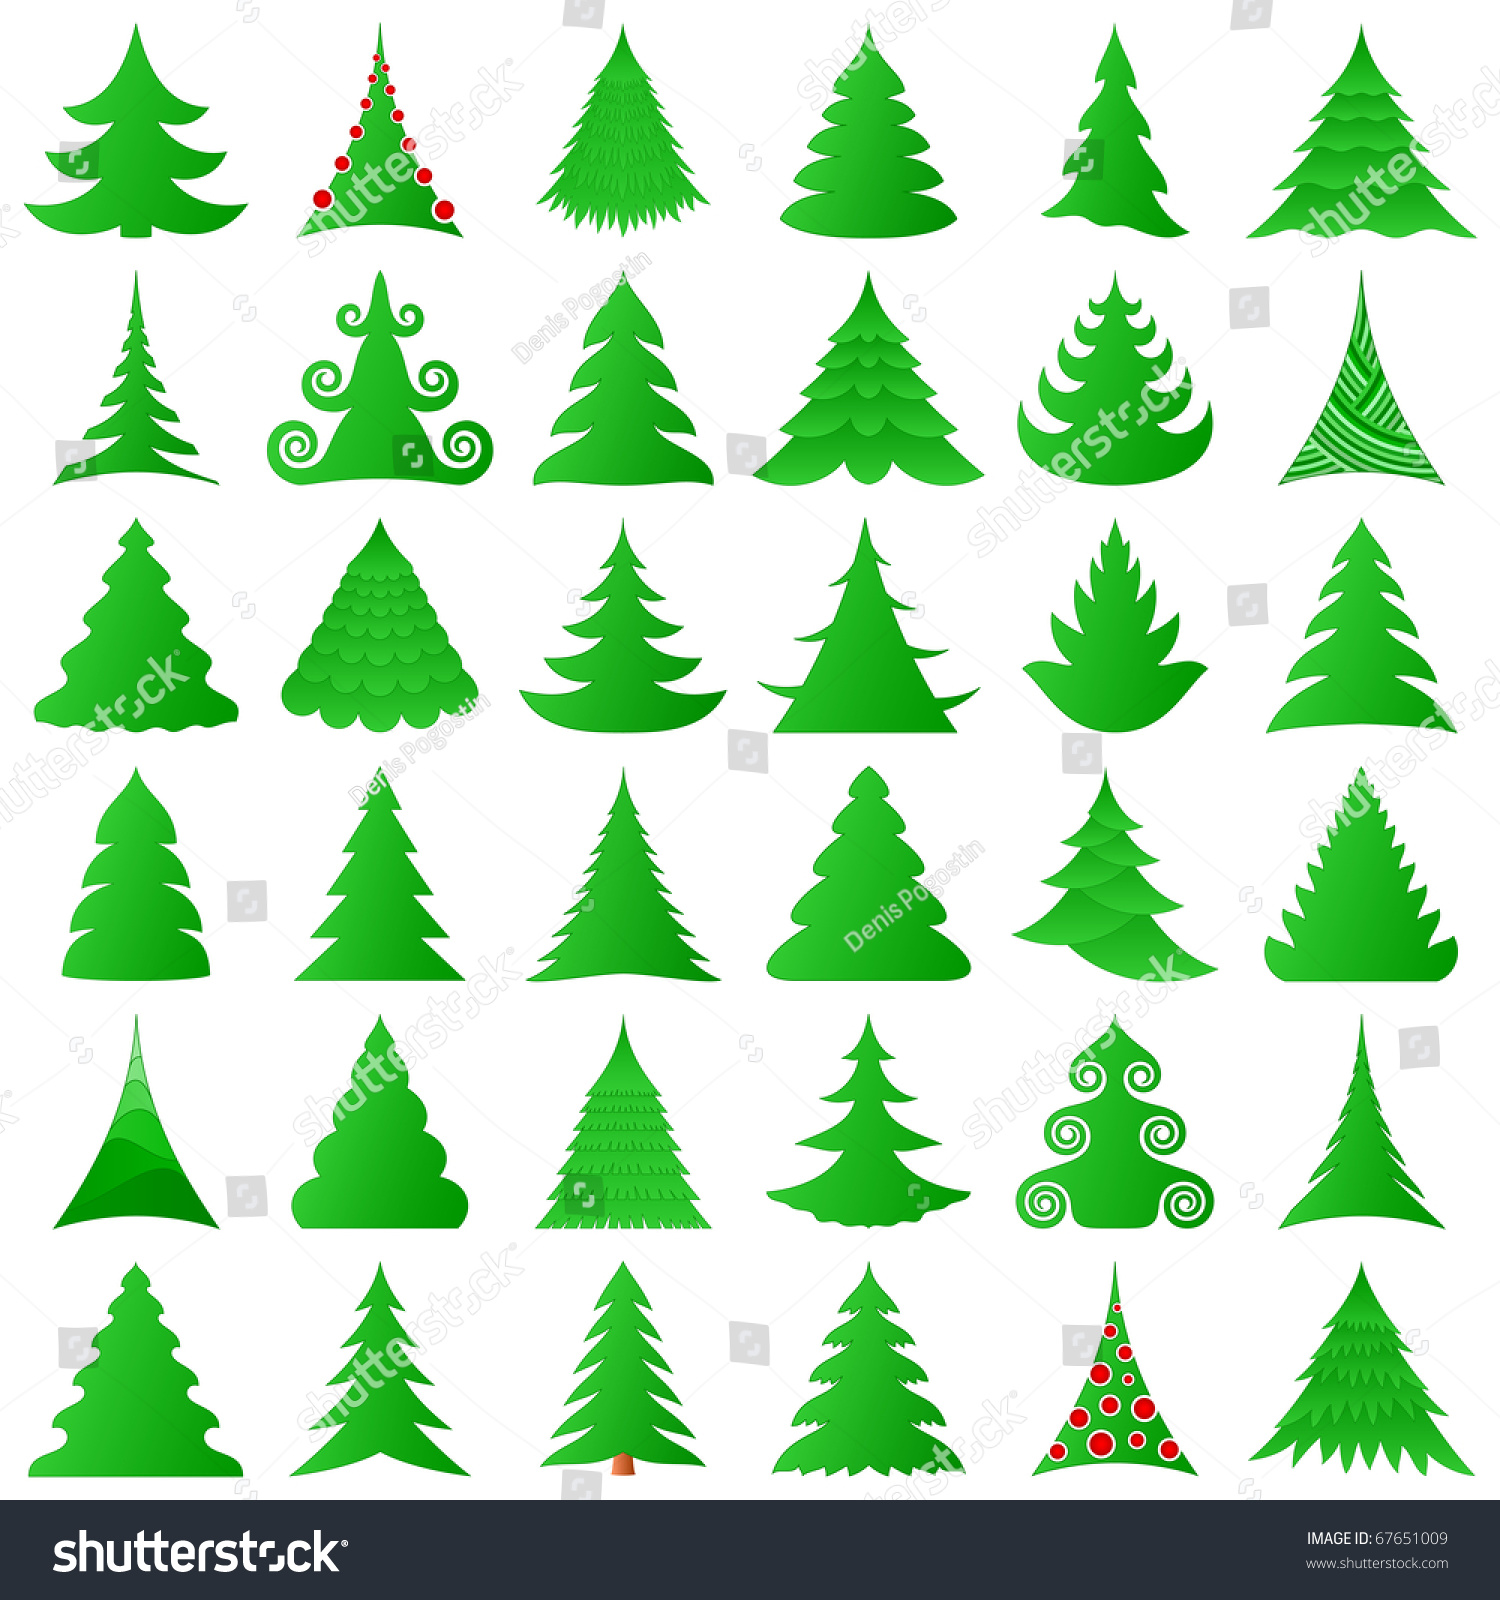 Christmas Tree Collection Gravesend : Christmas trees collection stock vector illustration